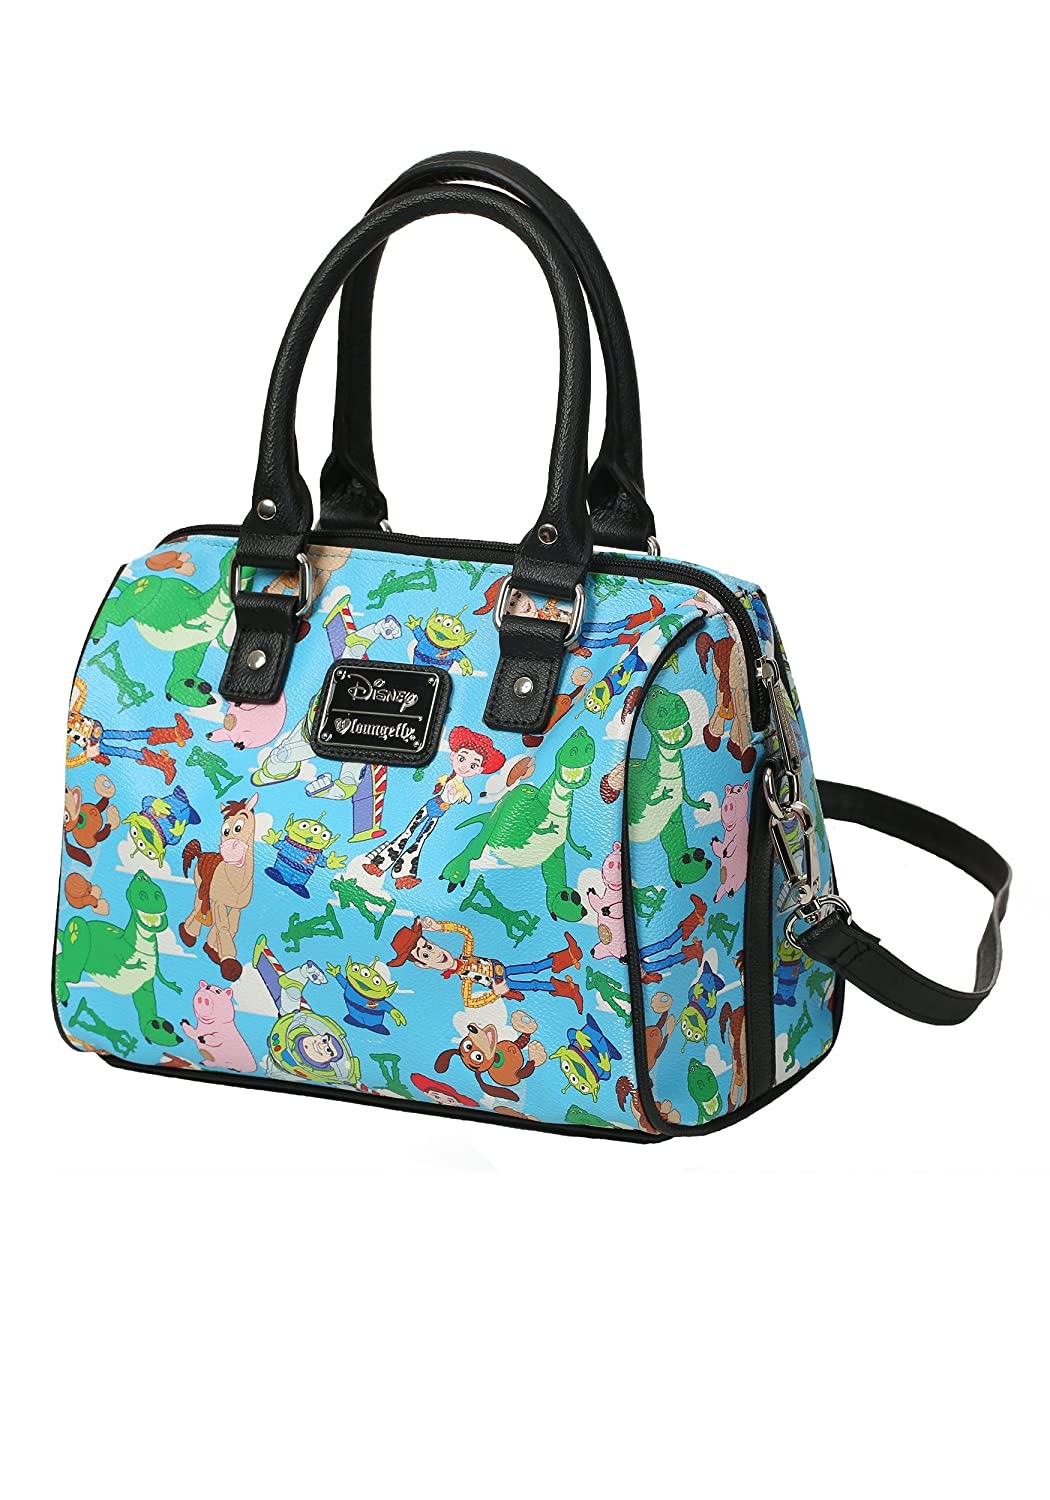 f0d3ef1542 Amazon.com: Loungefly Toy Story Purse Standard: Clothing